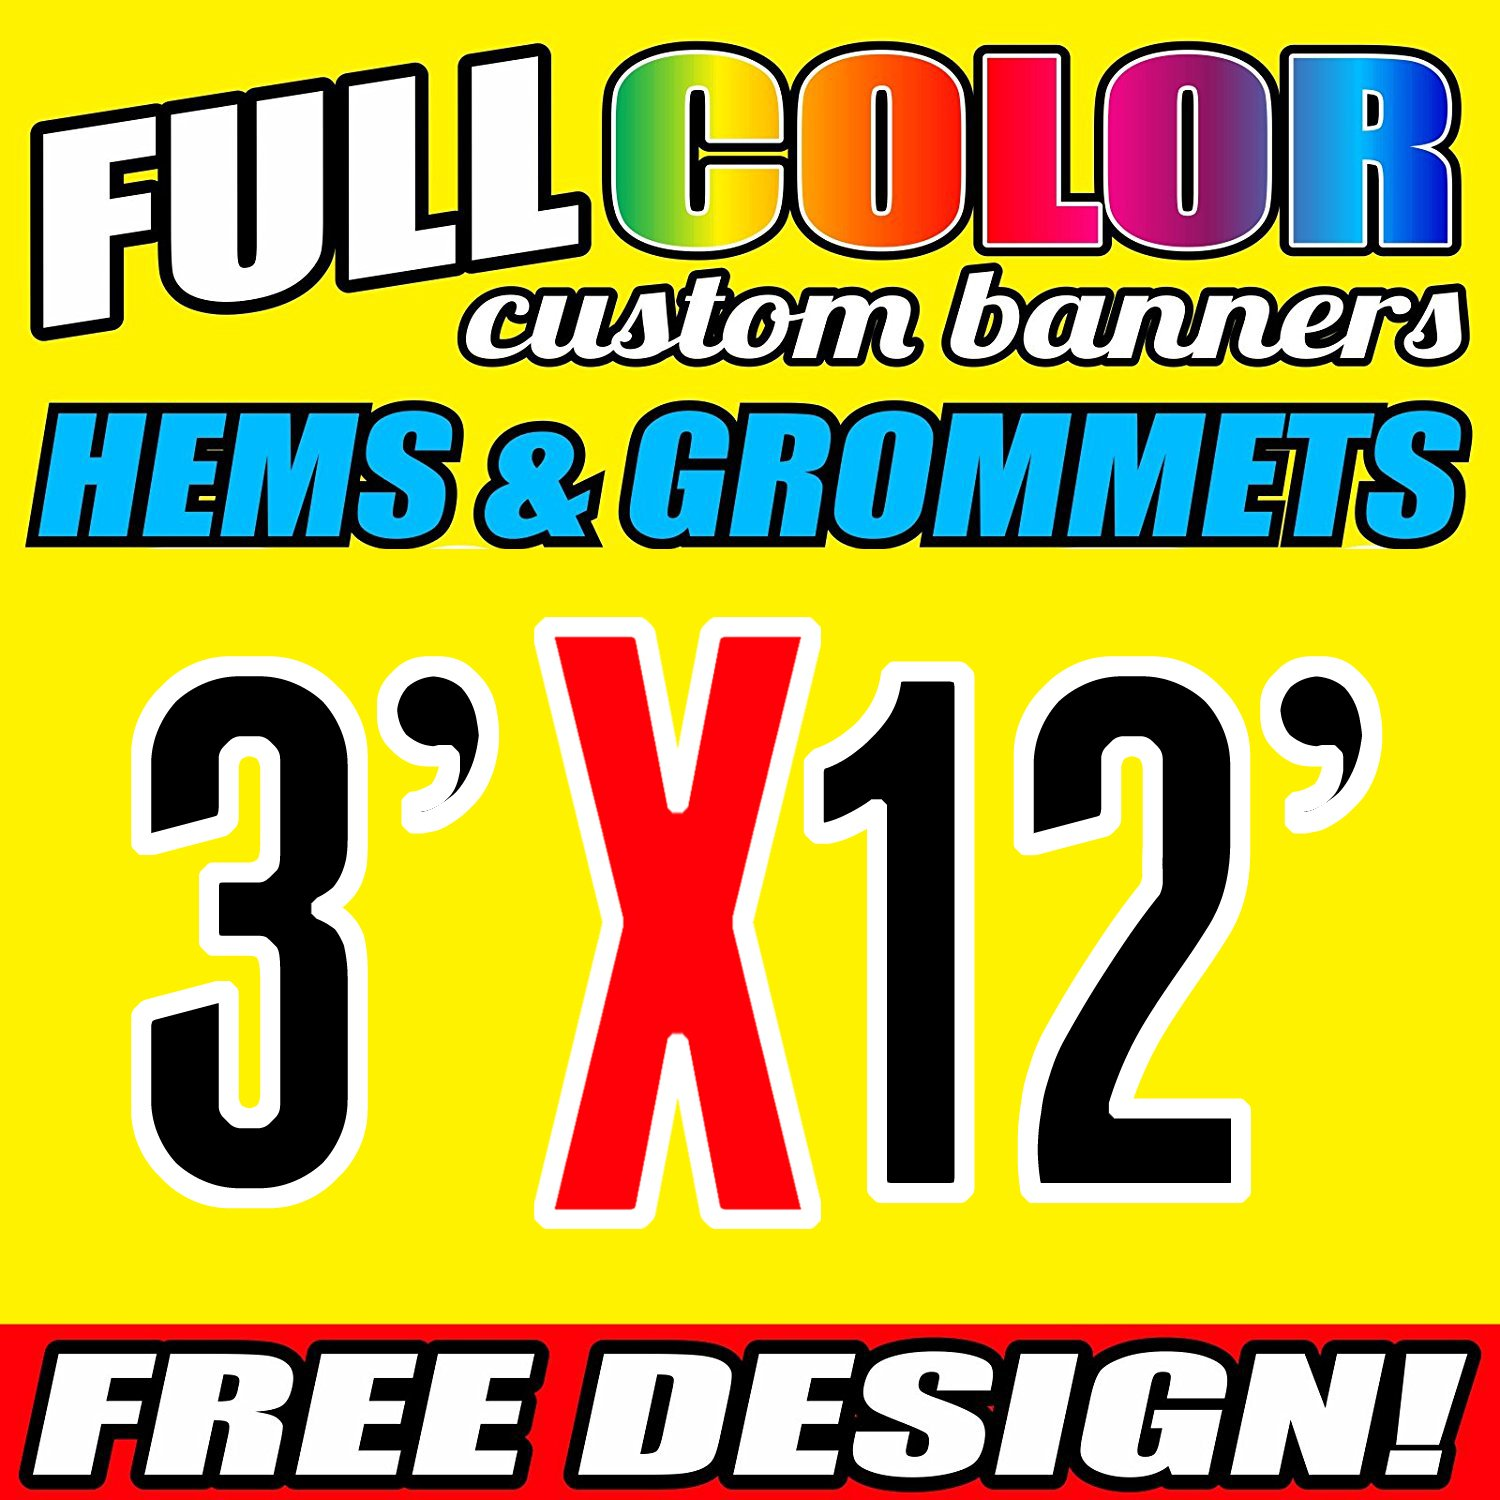 SIGN HEAVY DUTY 8ft x 6ft Free design !! CHEAP OUTDOOR PVC BANNERS WATERPROOF